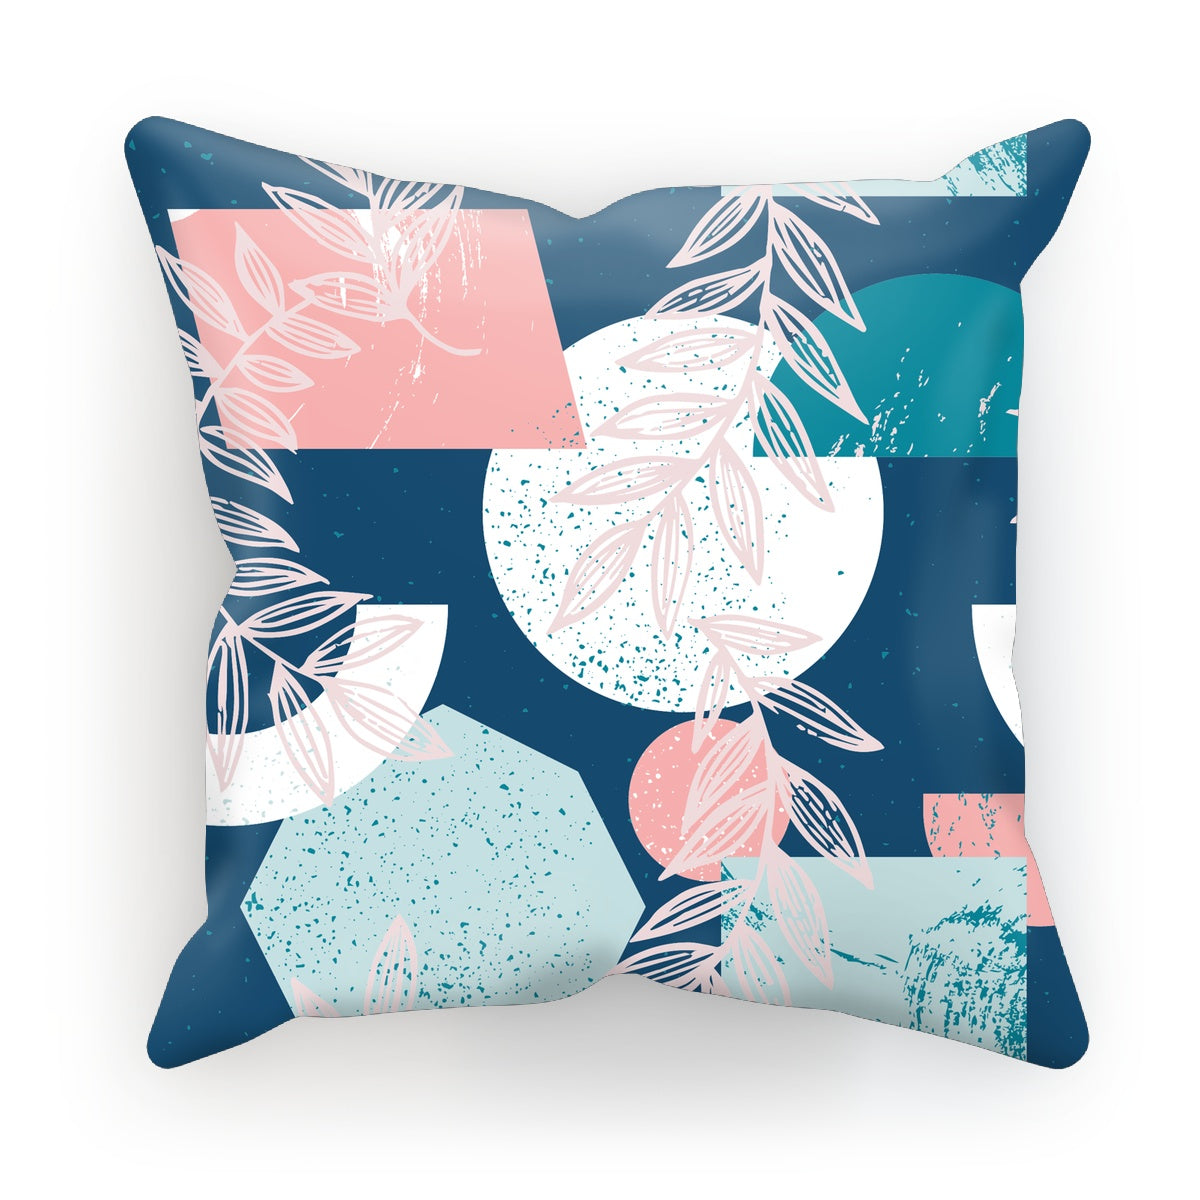 Boho Blues Cushion